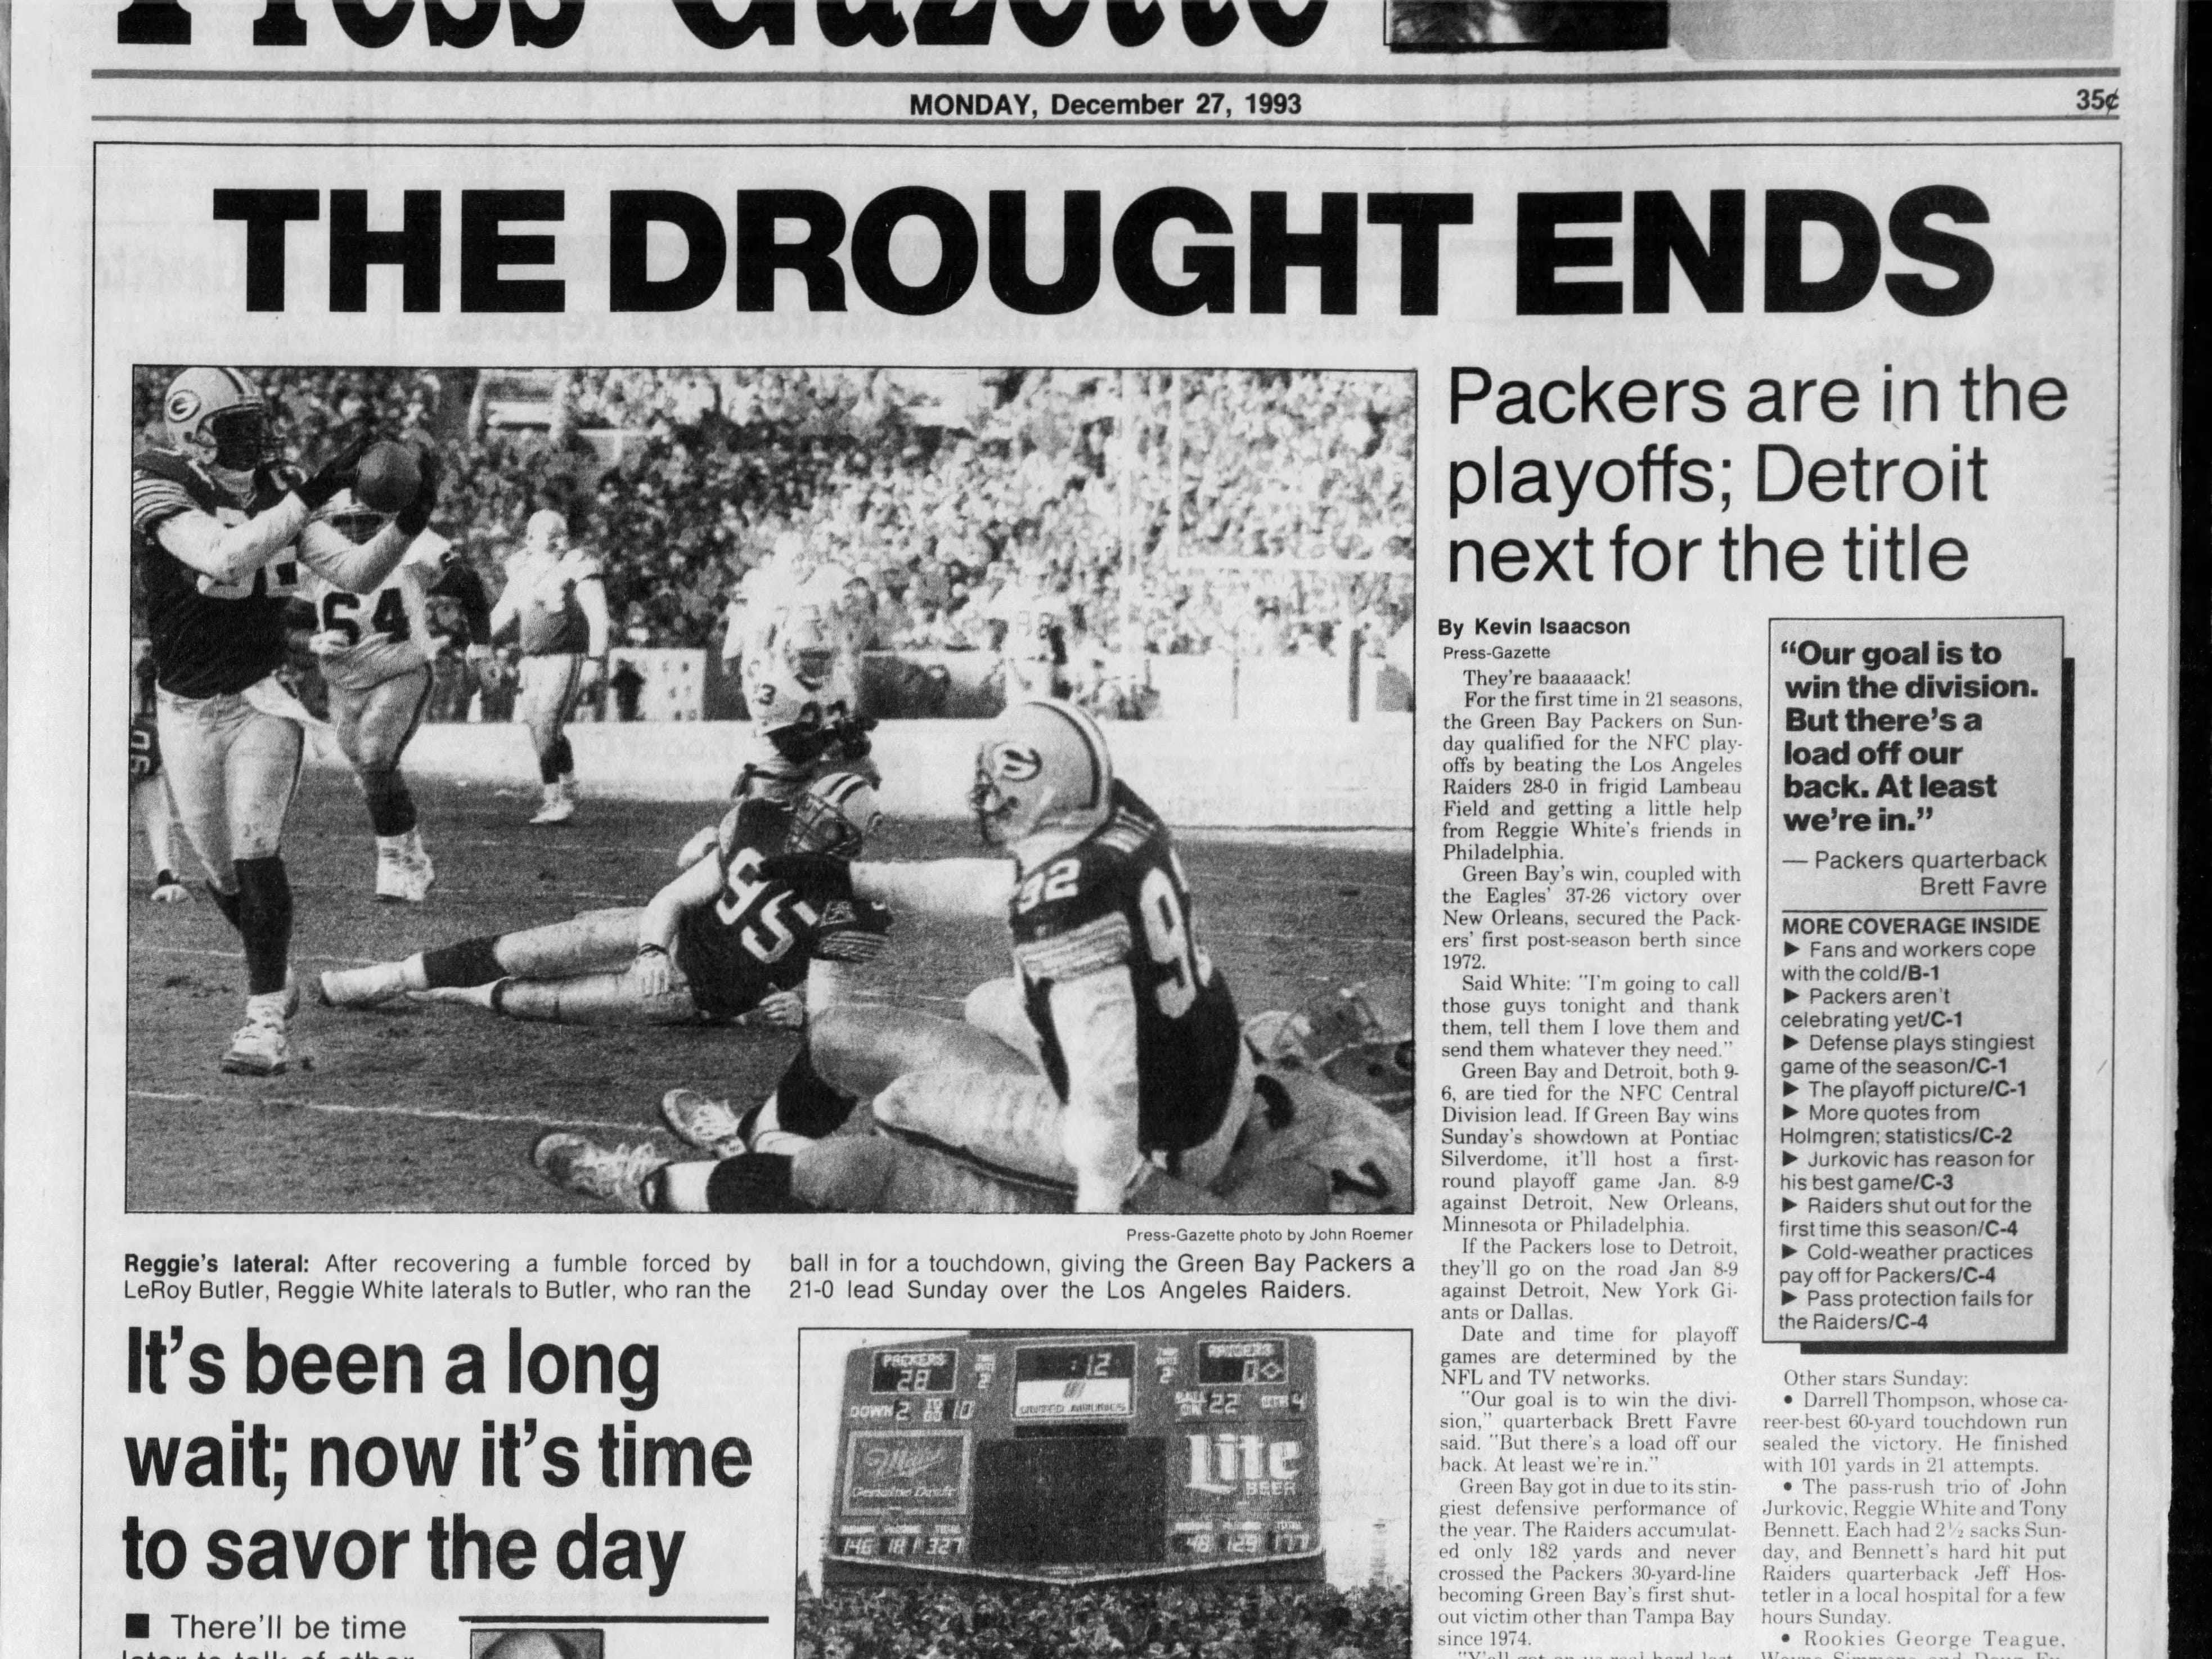 Today in History: Dec. 27, 1993